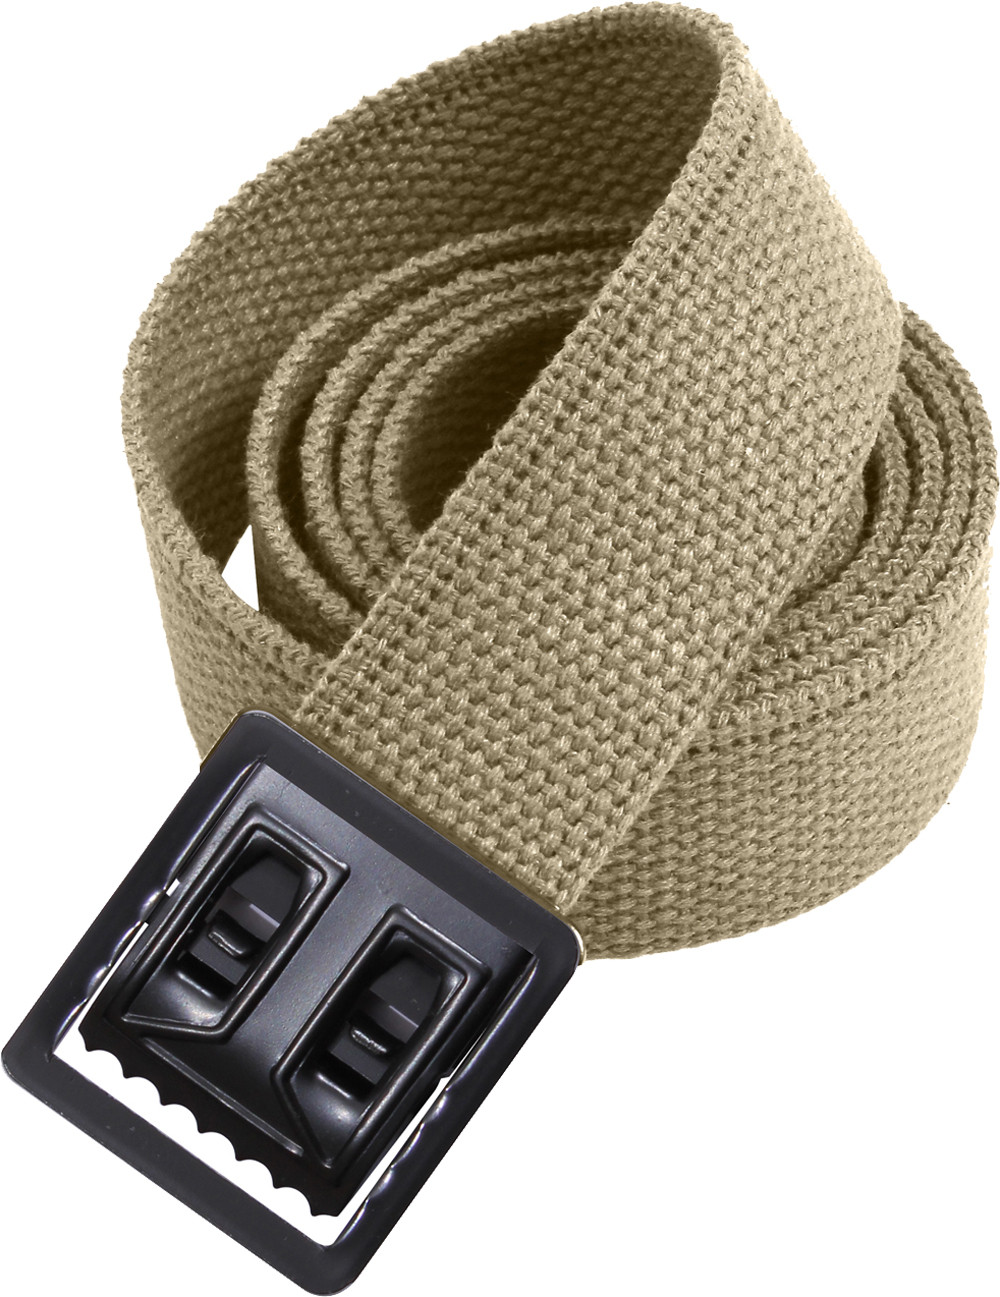 Khaki Military Cotton Web Belt   Black Open Face Buckle 74b6f61d07c